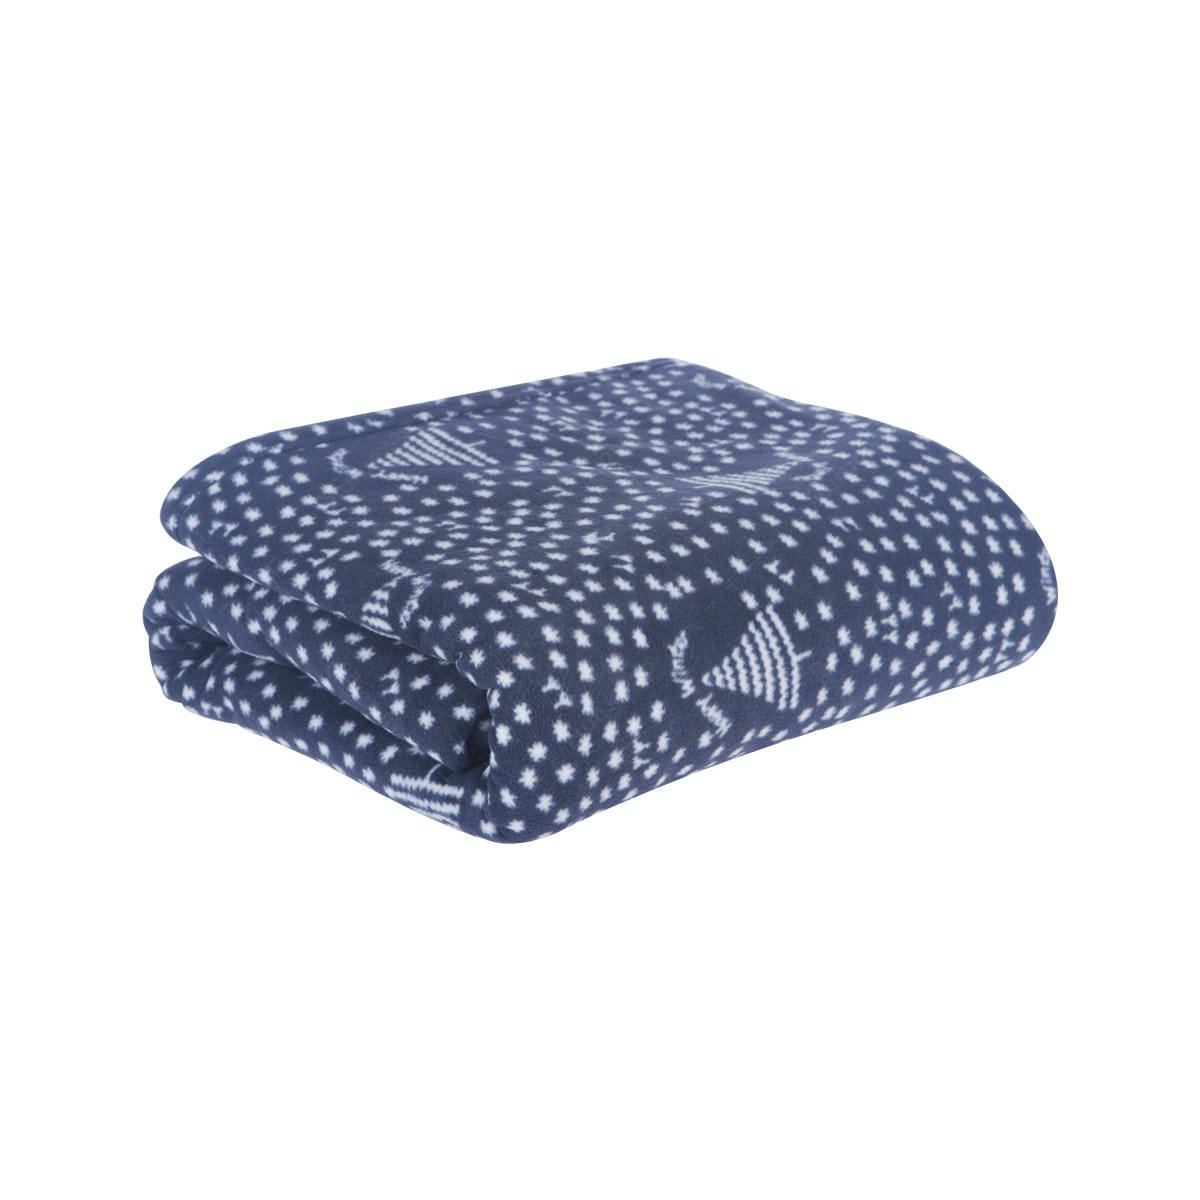 Beam and Co Blanket Navy Happy Winter